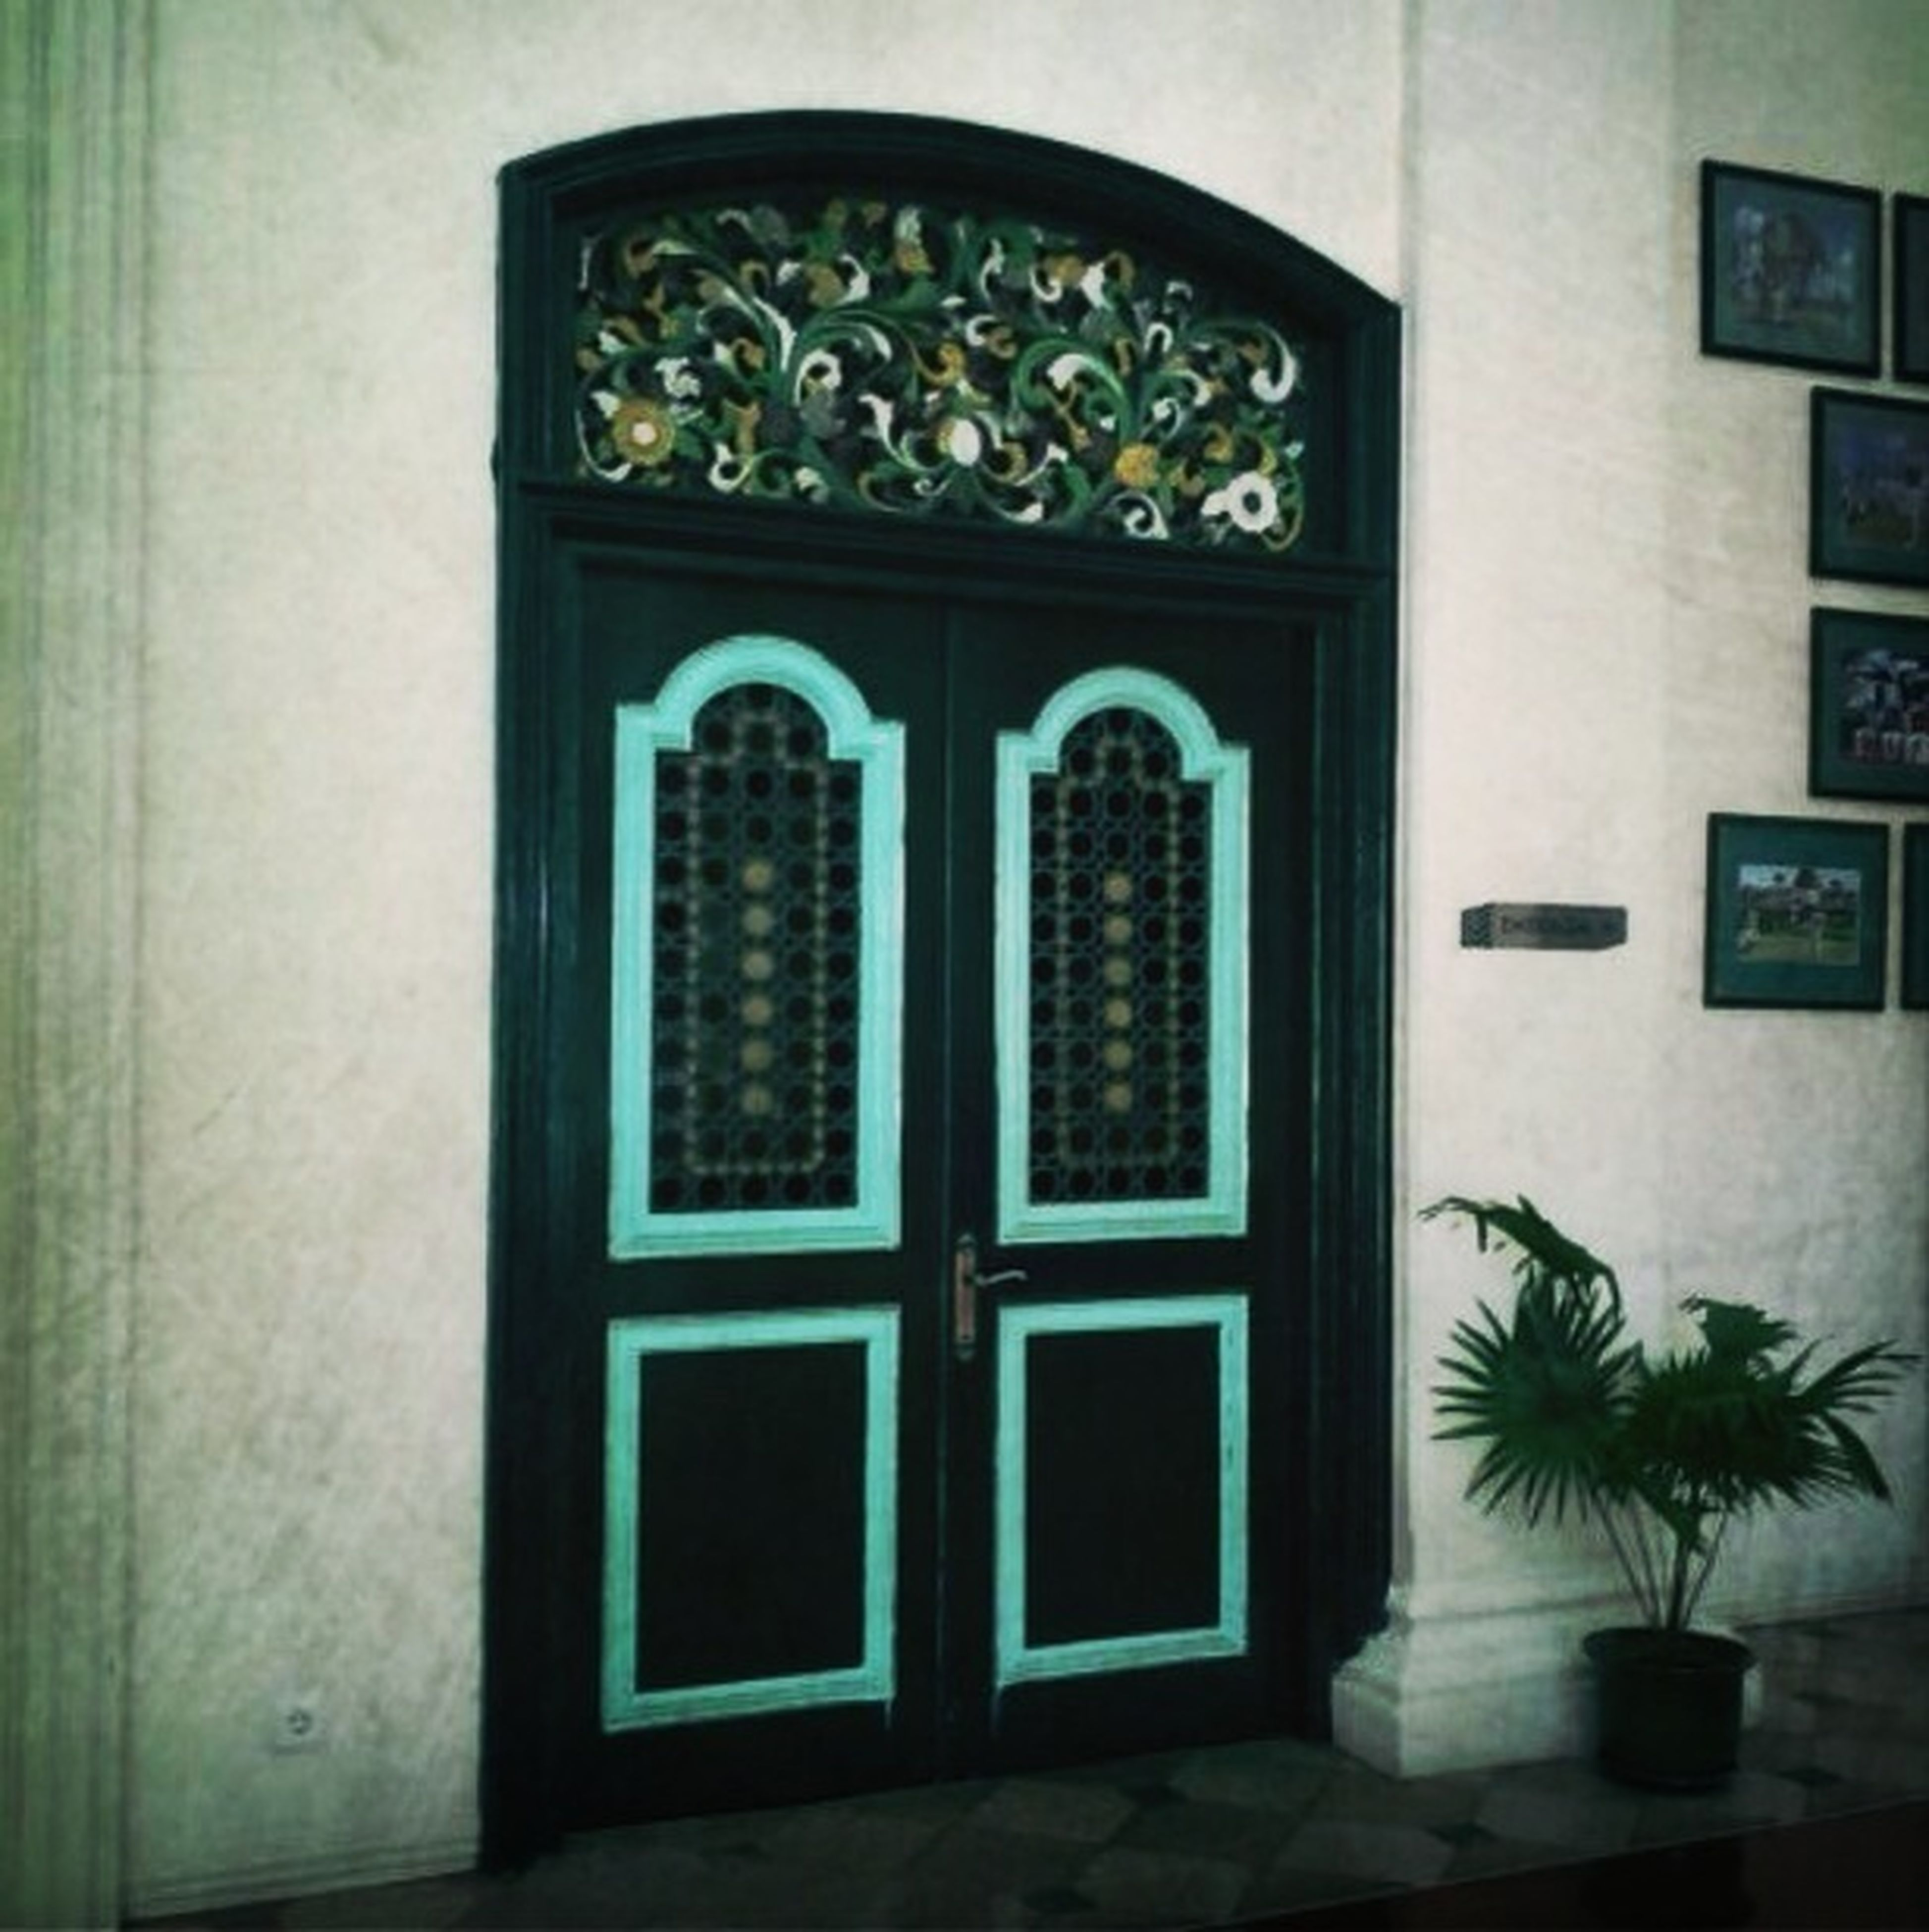 window, indoors, architecture, built structure, door, closed, house, building exterior, glass - material, home interior, entrance, no people, wall, wall - building feature, green color, potted plant, pattern, day, design, open